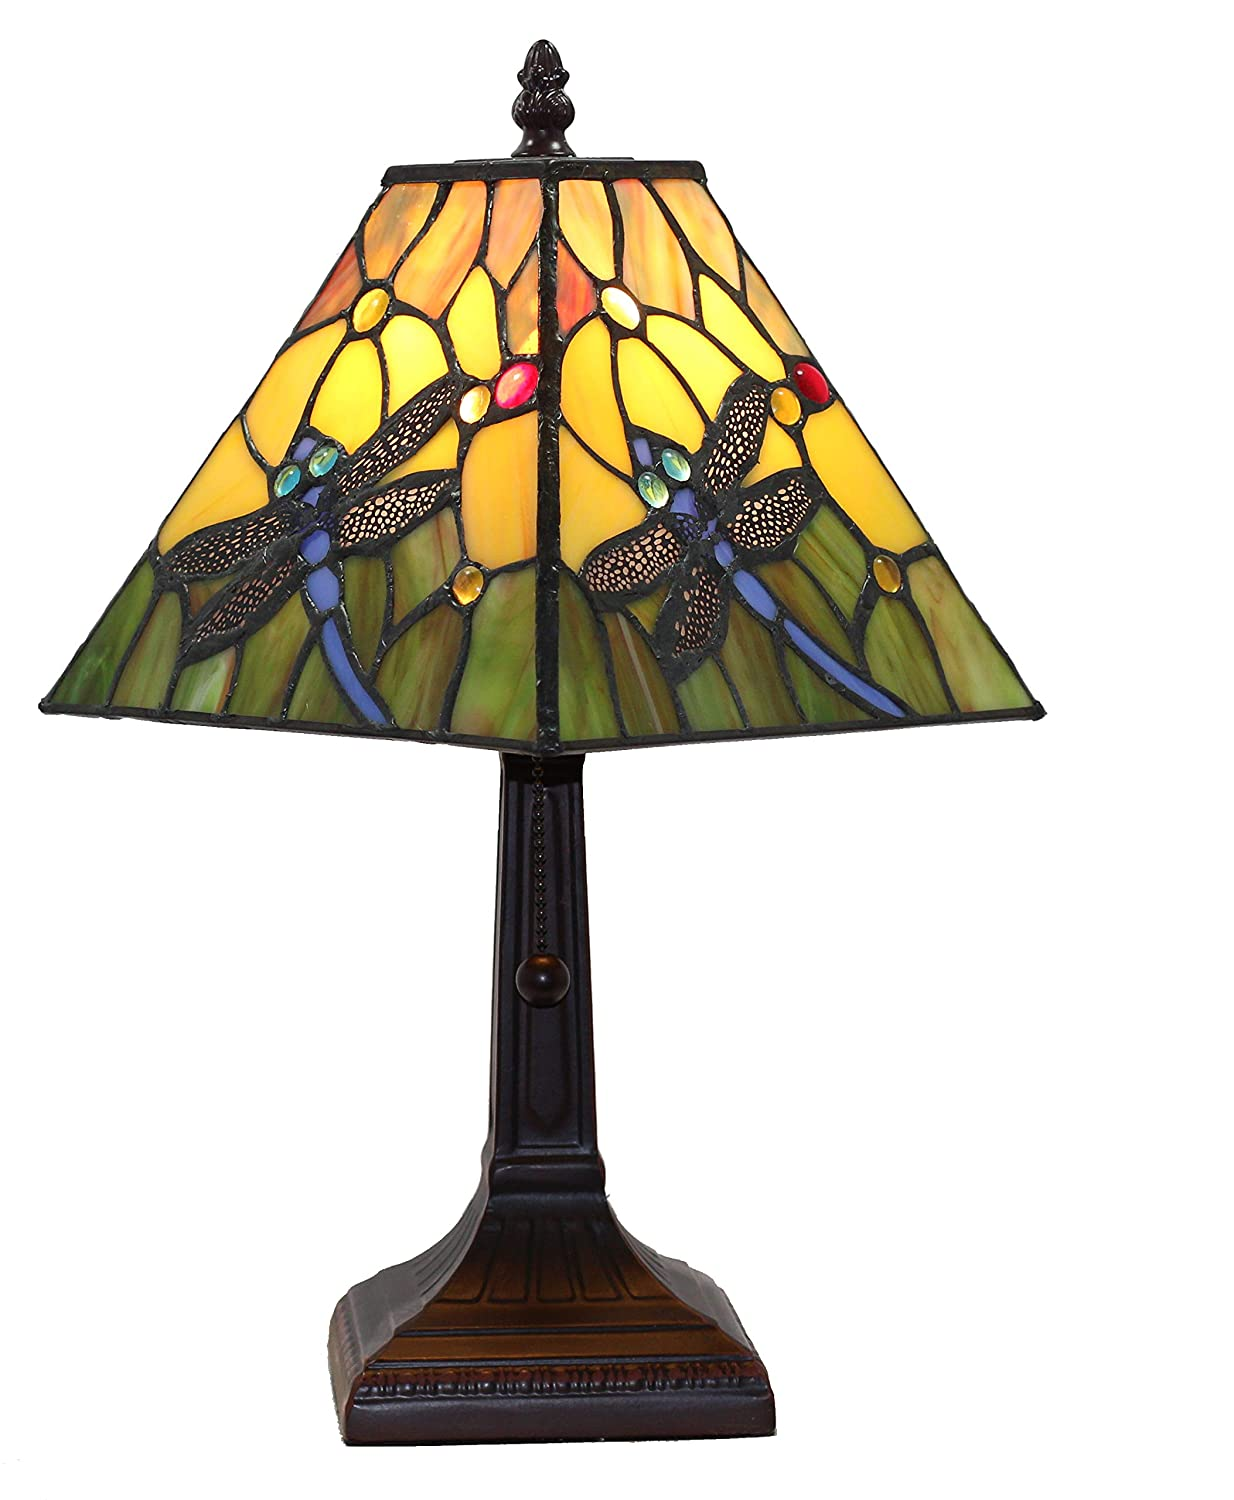 "Tiffany Style Mini Accent Lamp Mission 15"" Tall Stained Glass Yellow Green Floral Flower Dragonfly Vintage Antique Light Décor Nightstand Living Room Bedroom Handmade Gift AM289TL08B Amora Lighting"